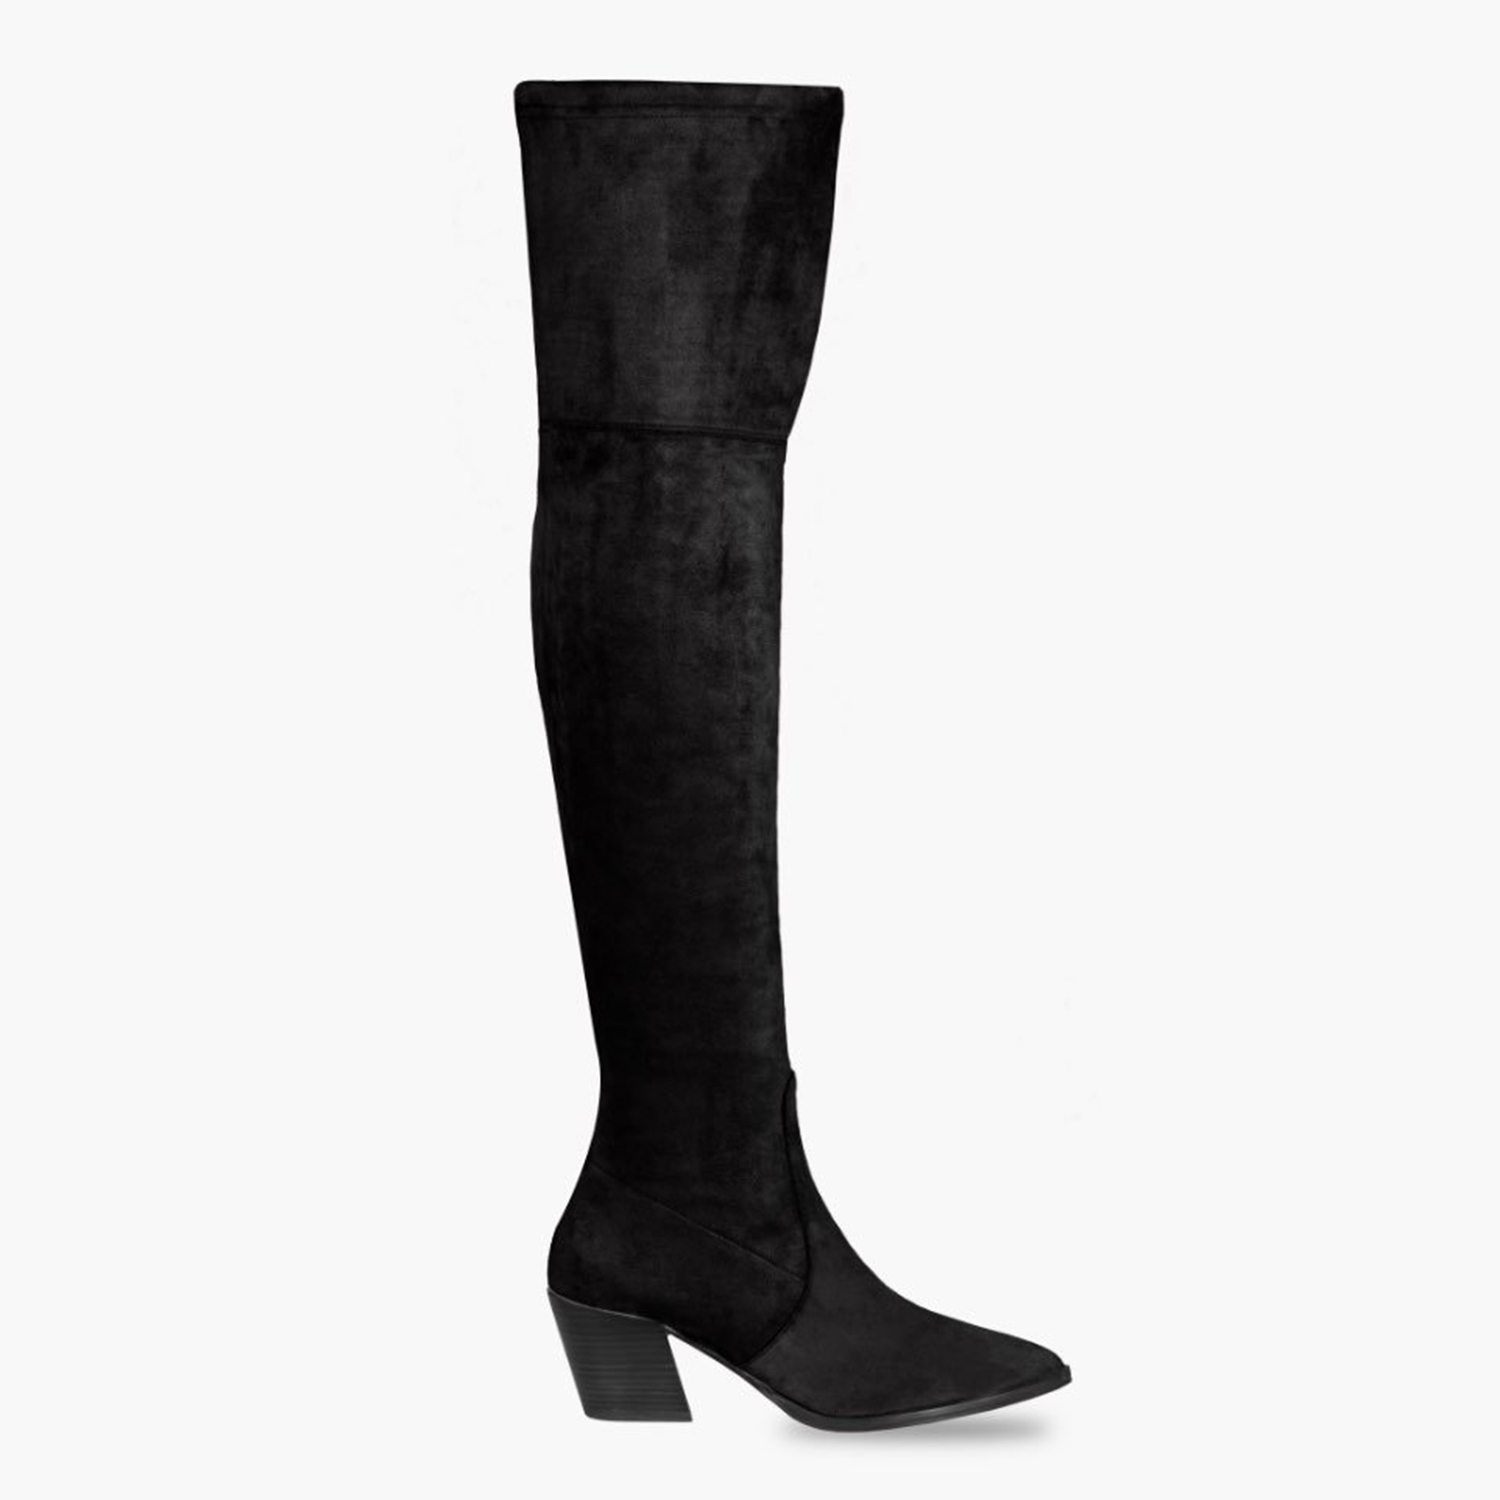 Women's Tempest Over-the-Knee Boot in Black